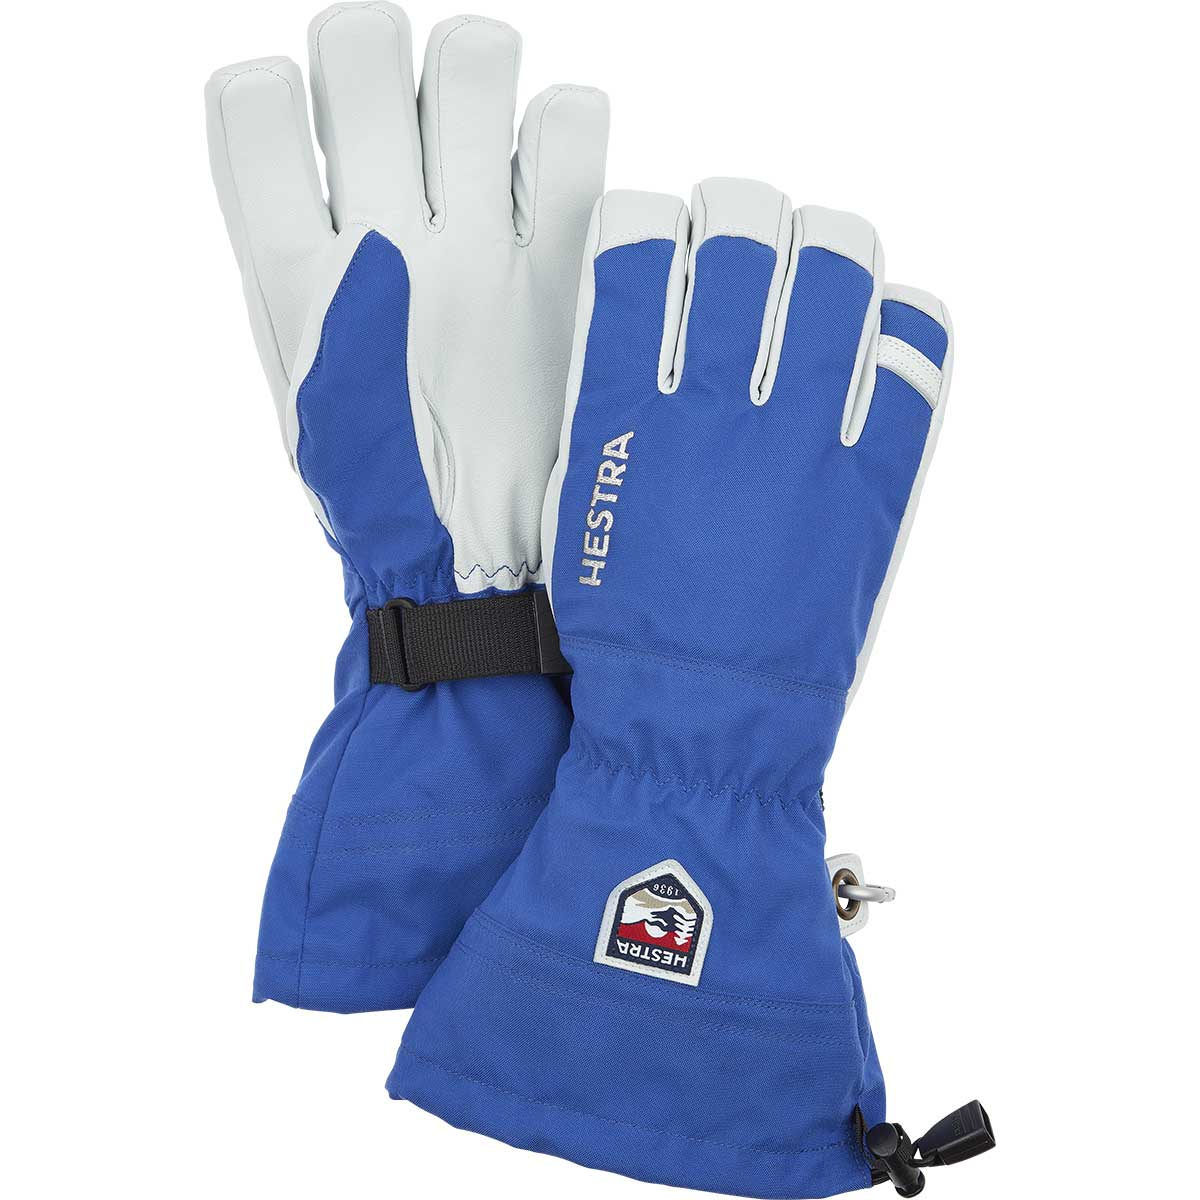 Hestra Army Leather Heli Glove in royal blue